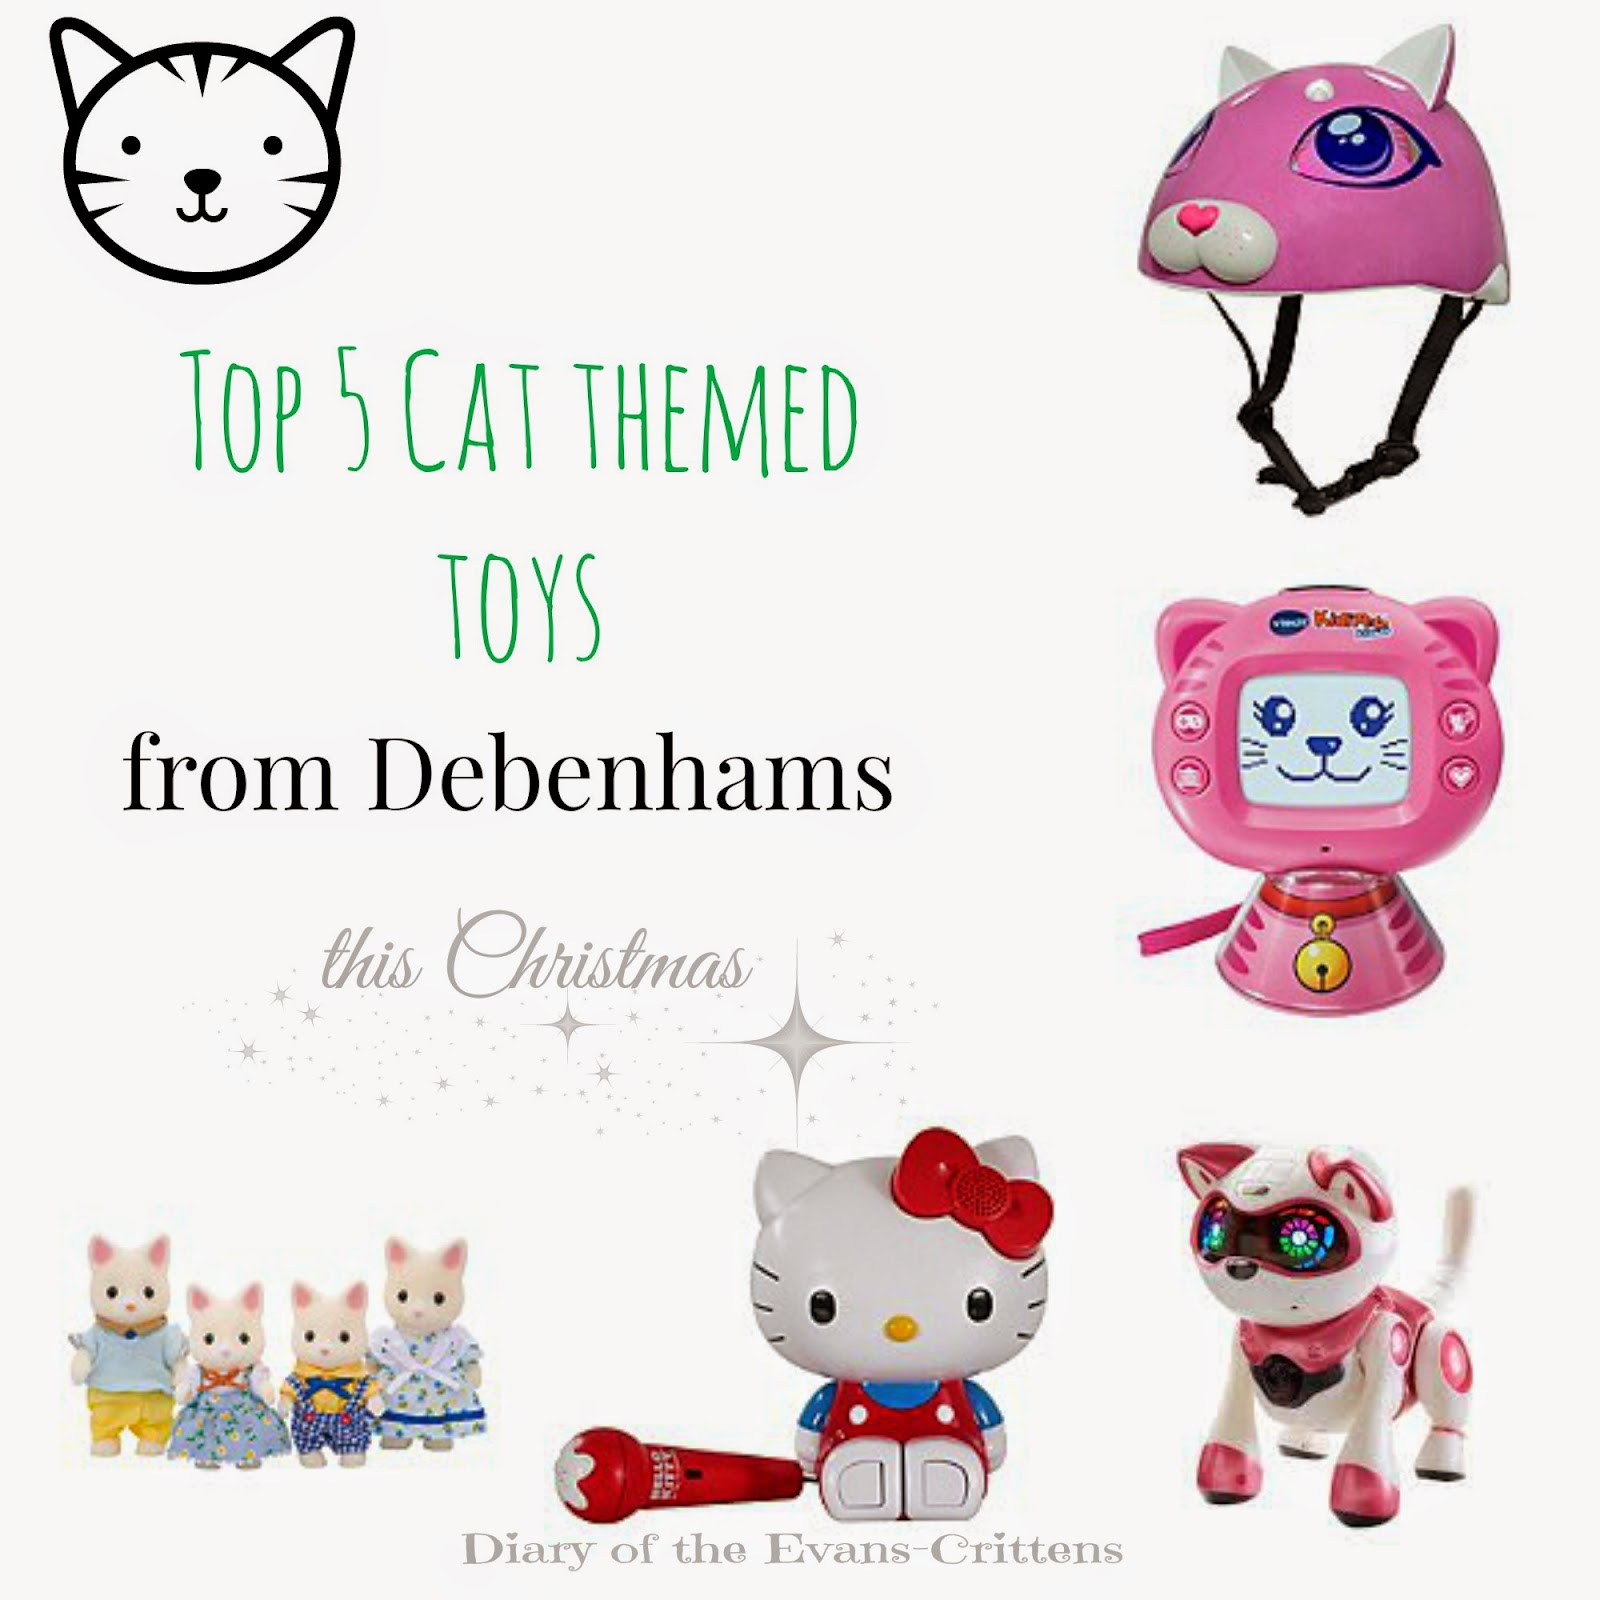 , Top 5 Cat Themed Toys for Christmas #foundit #wishlist